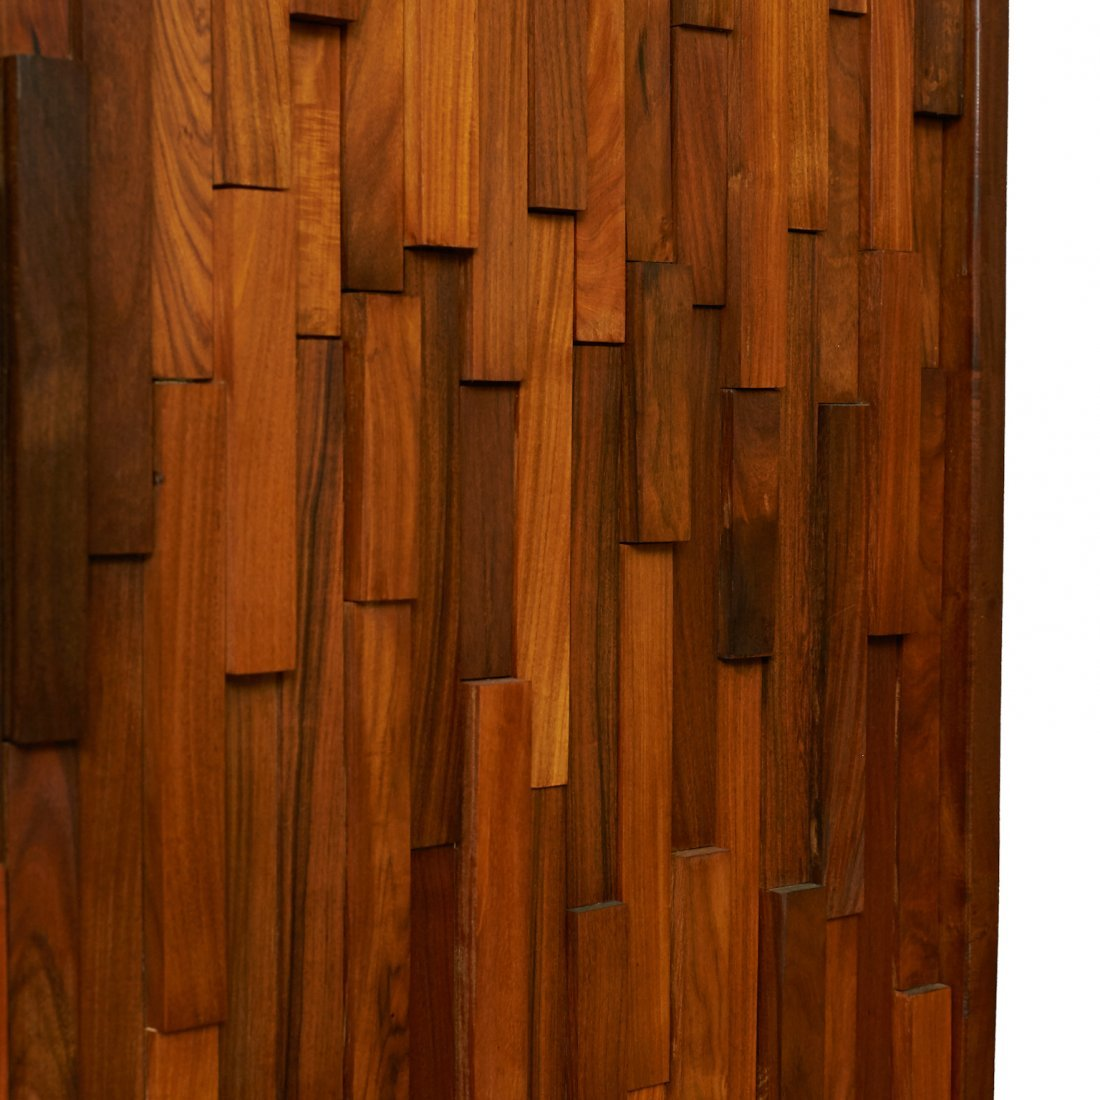 Percival Lafer Style Brazilian Rosewood 3-Panel Screens - 5